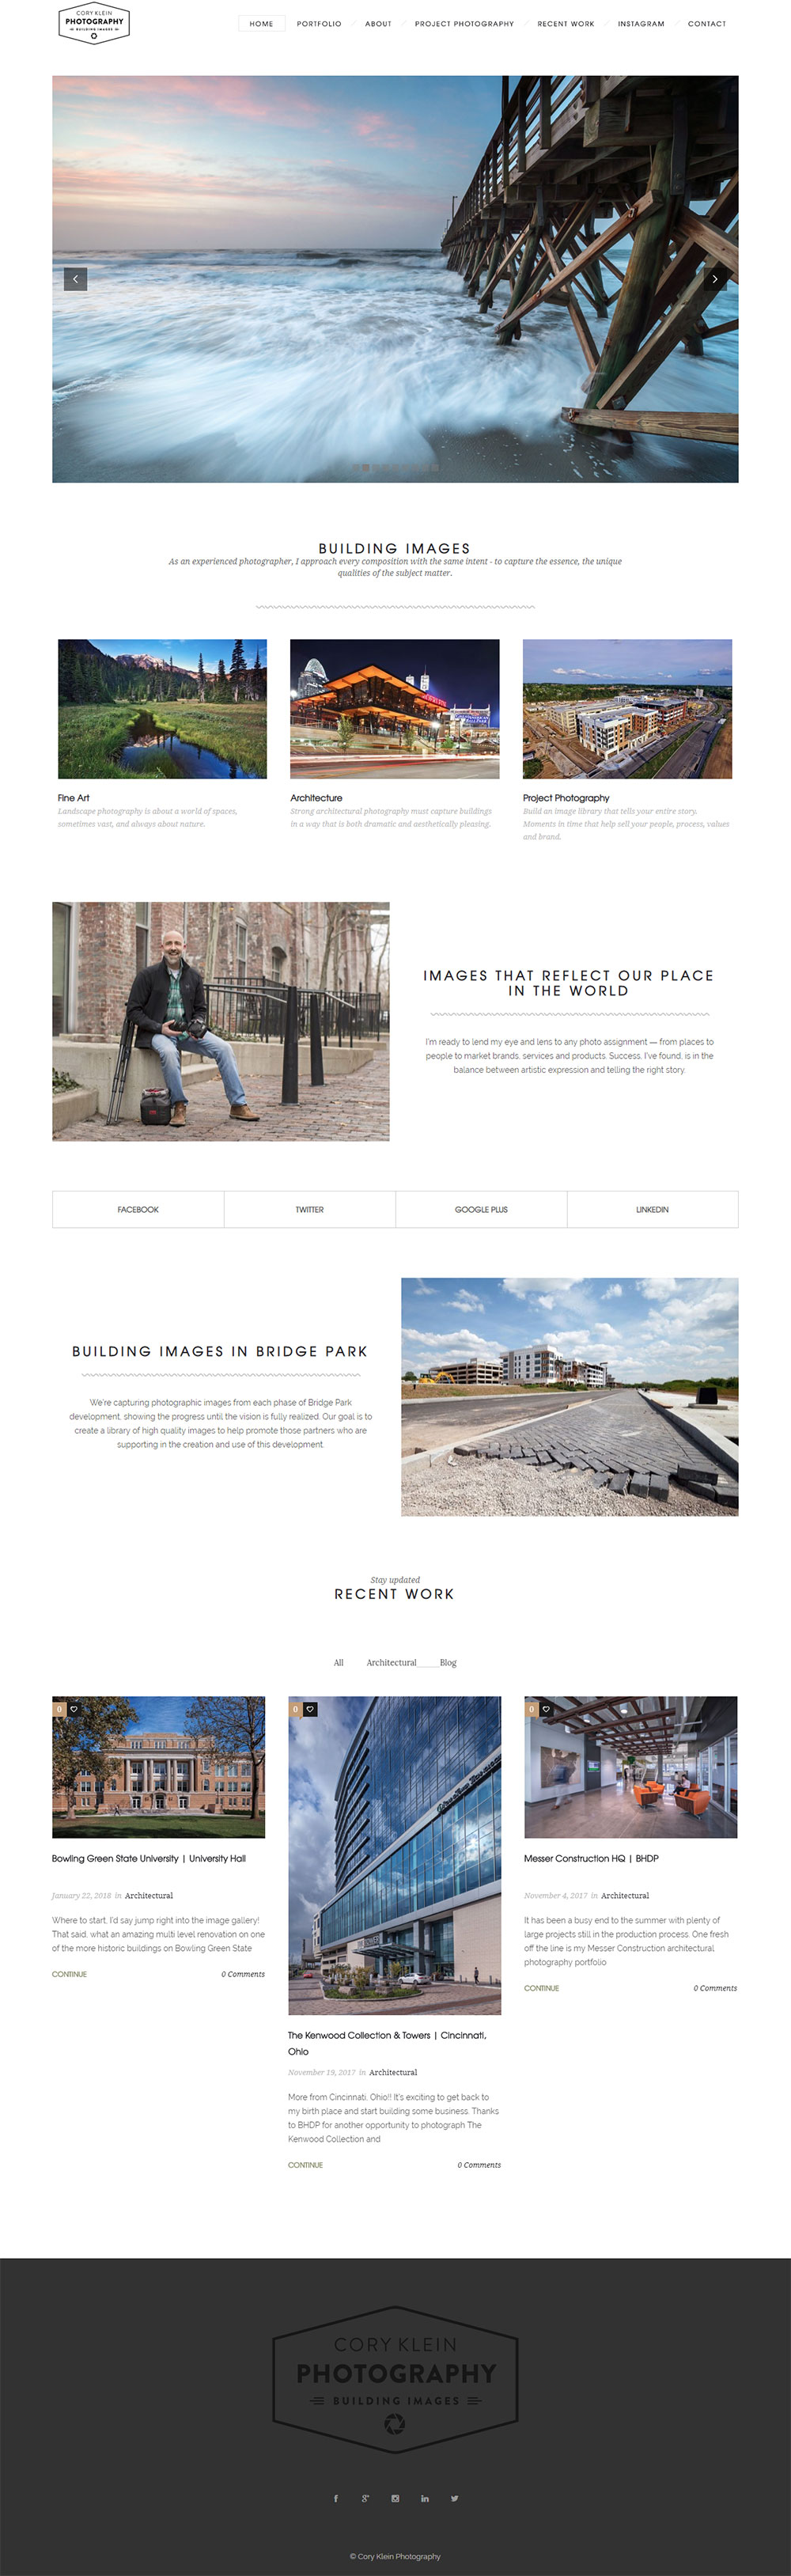 Website Design for Architectural Photographer, Cory Klein